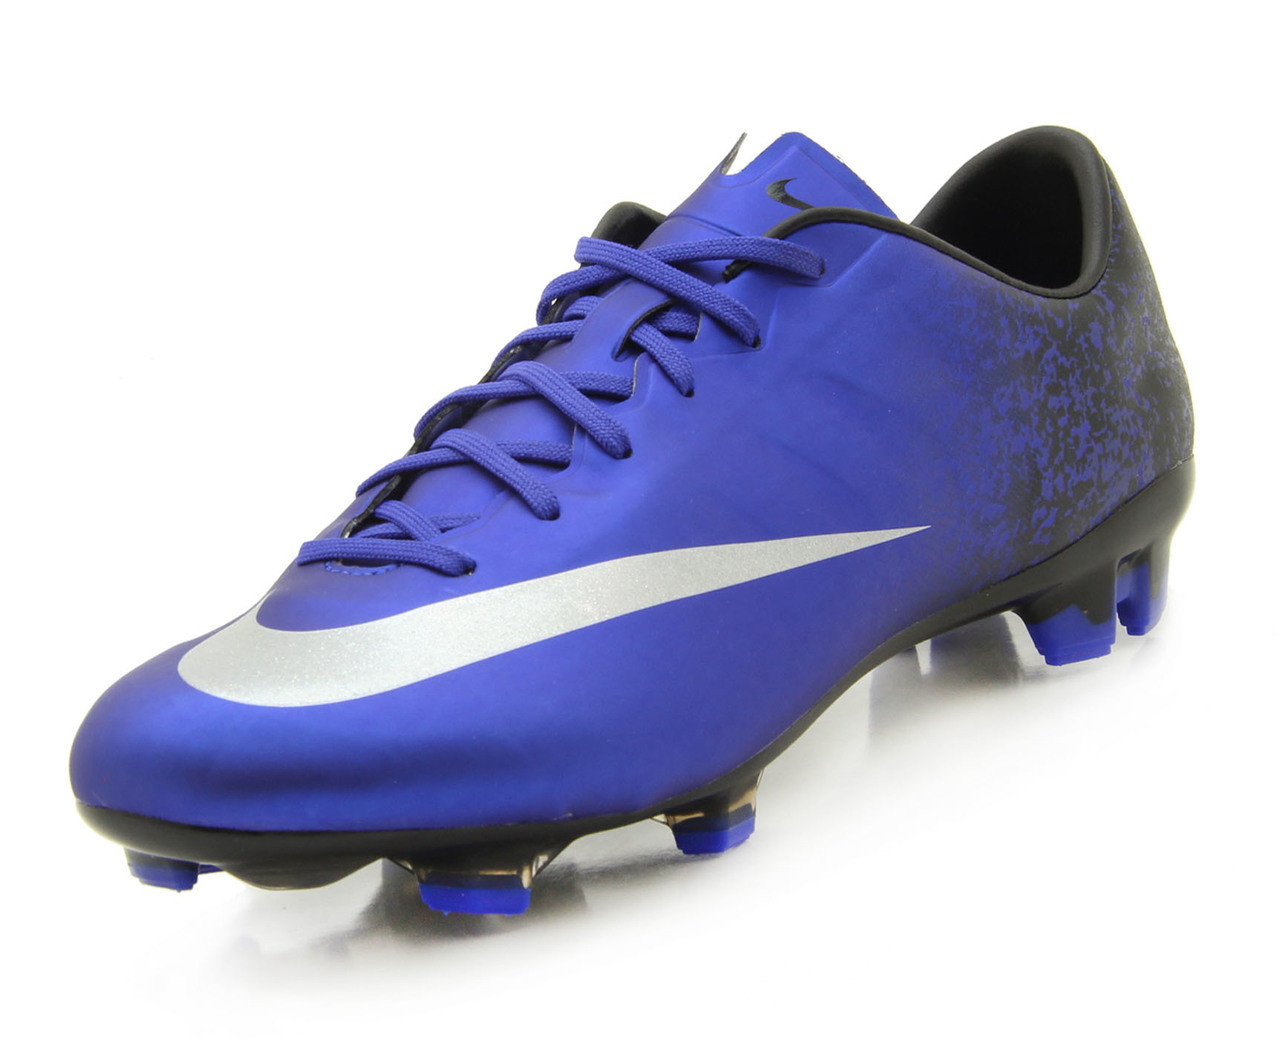 135be94b2d396 Nike Mercurial Veloce II CR FG - Deep Royal Blue/Racer Blue/Black/Metallic  Silver (052519) - ohp soccer